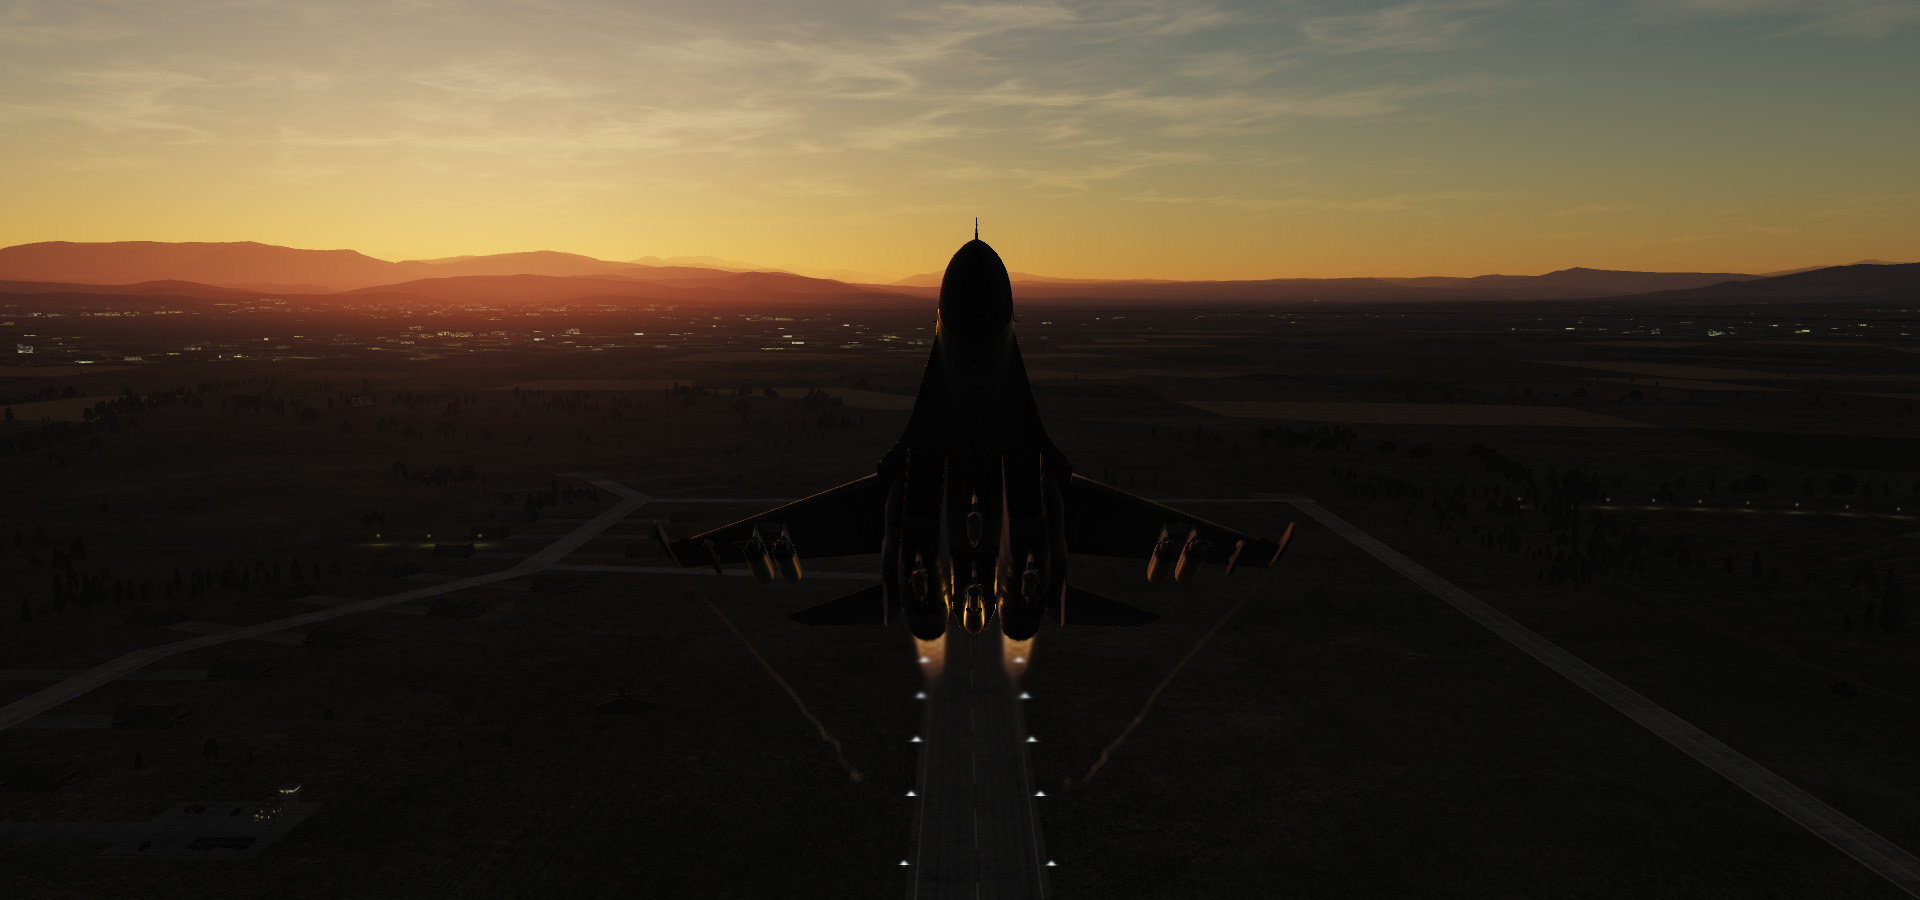 Su-27: Sunrise Takeoff